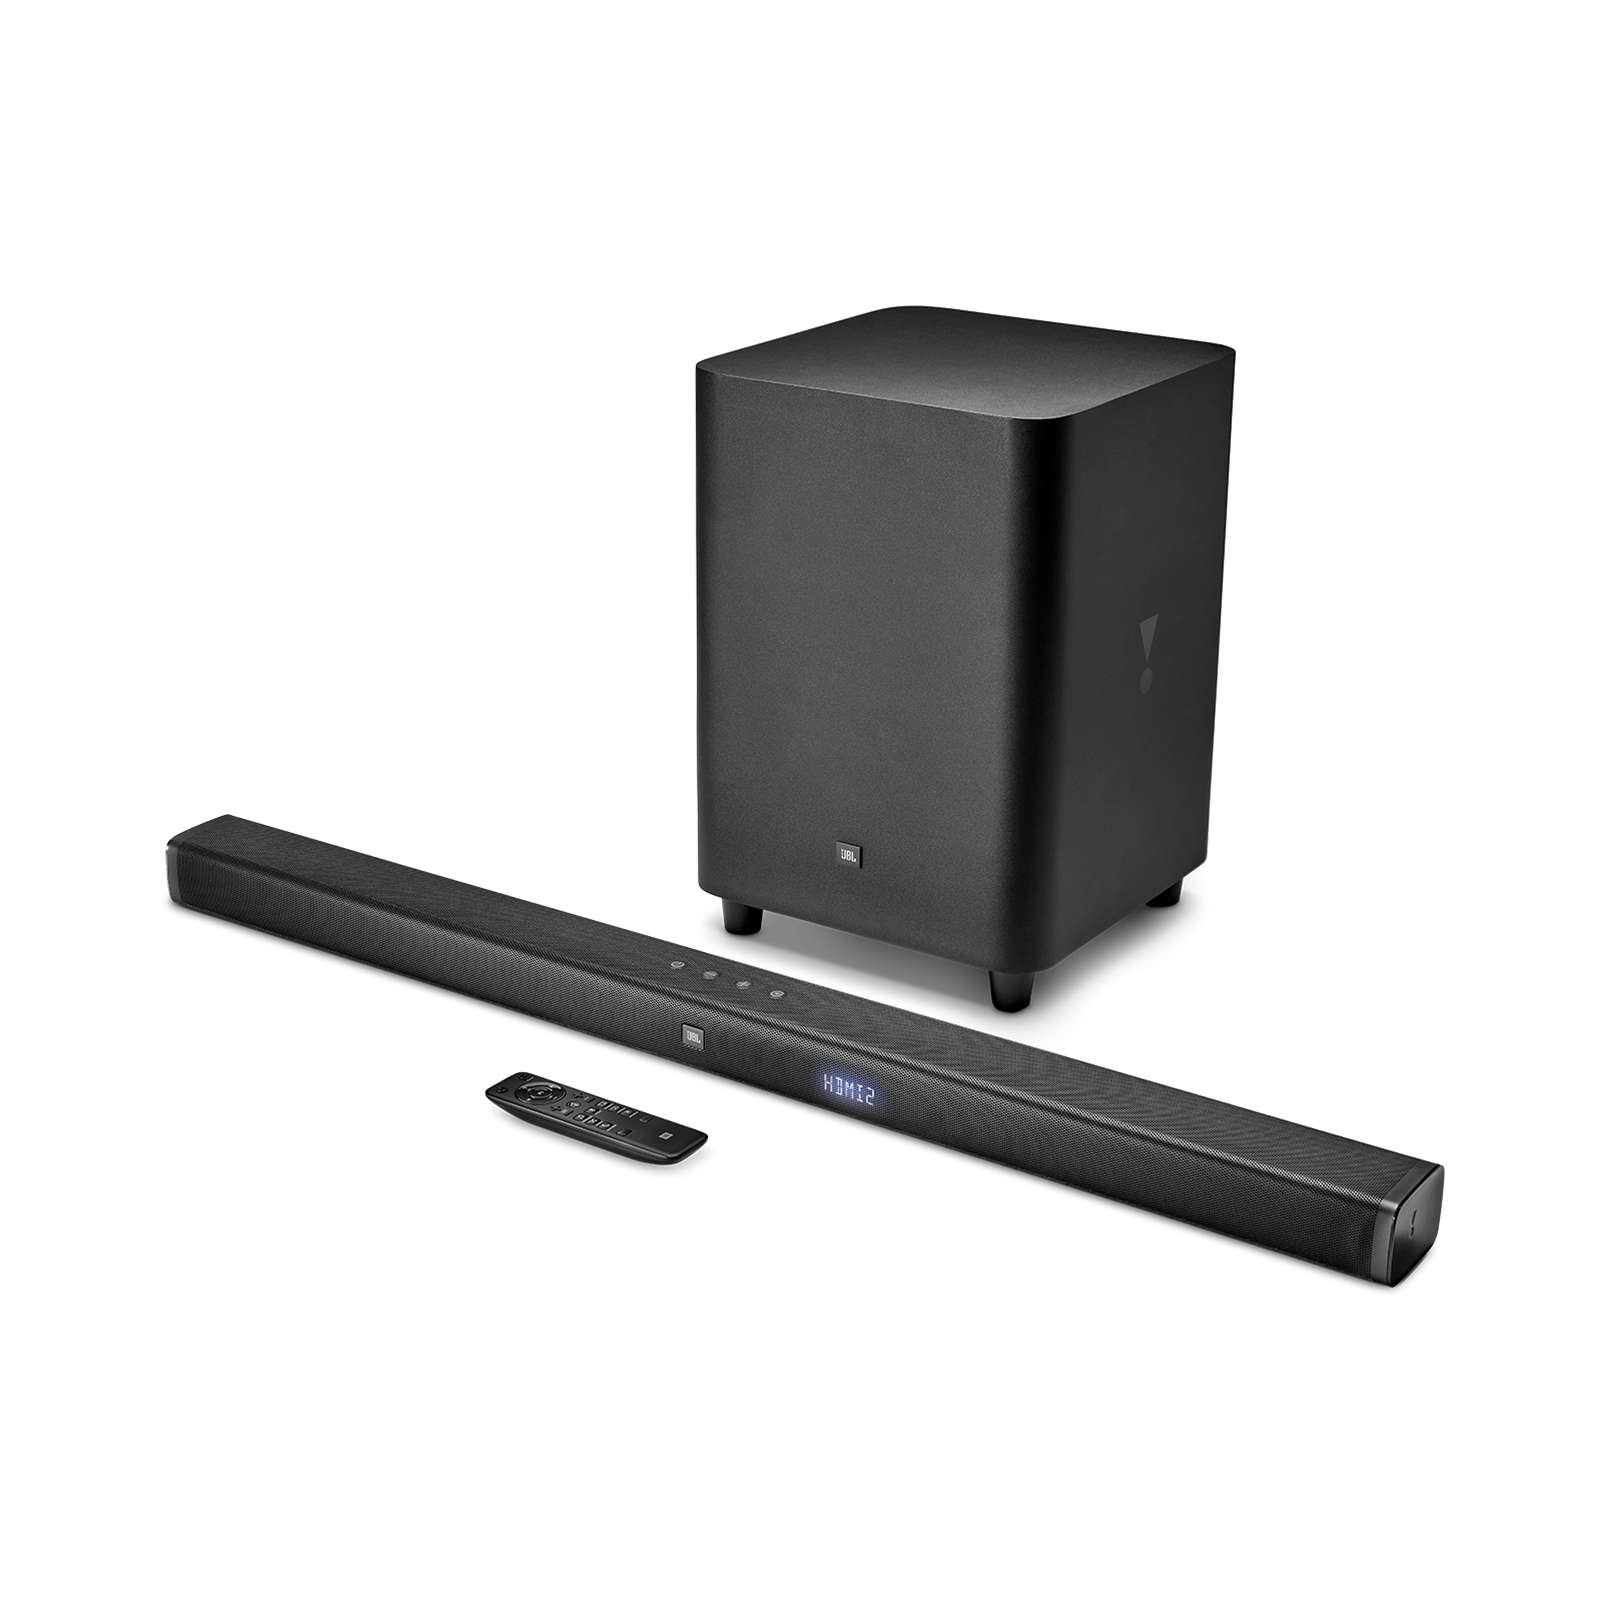 WIN! A JBL Bar 3.1 Soundbar!